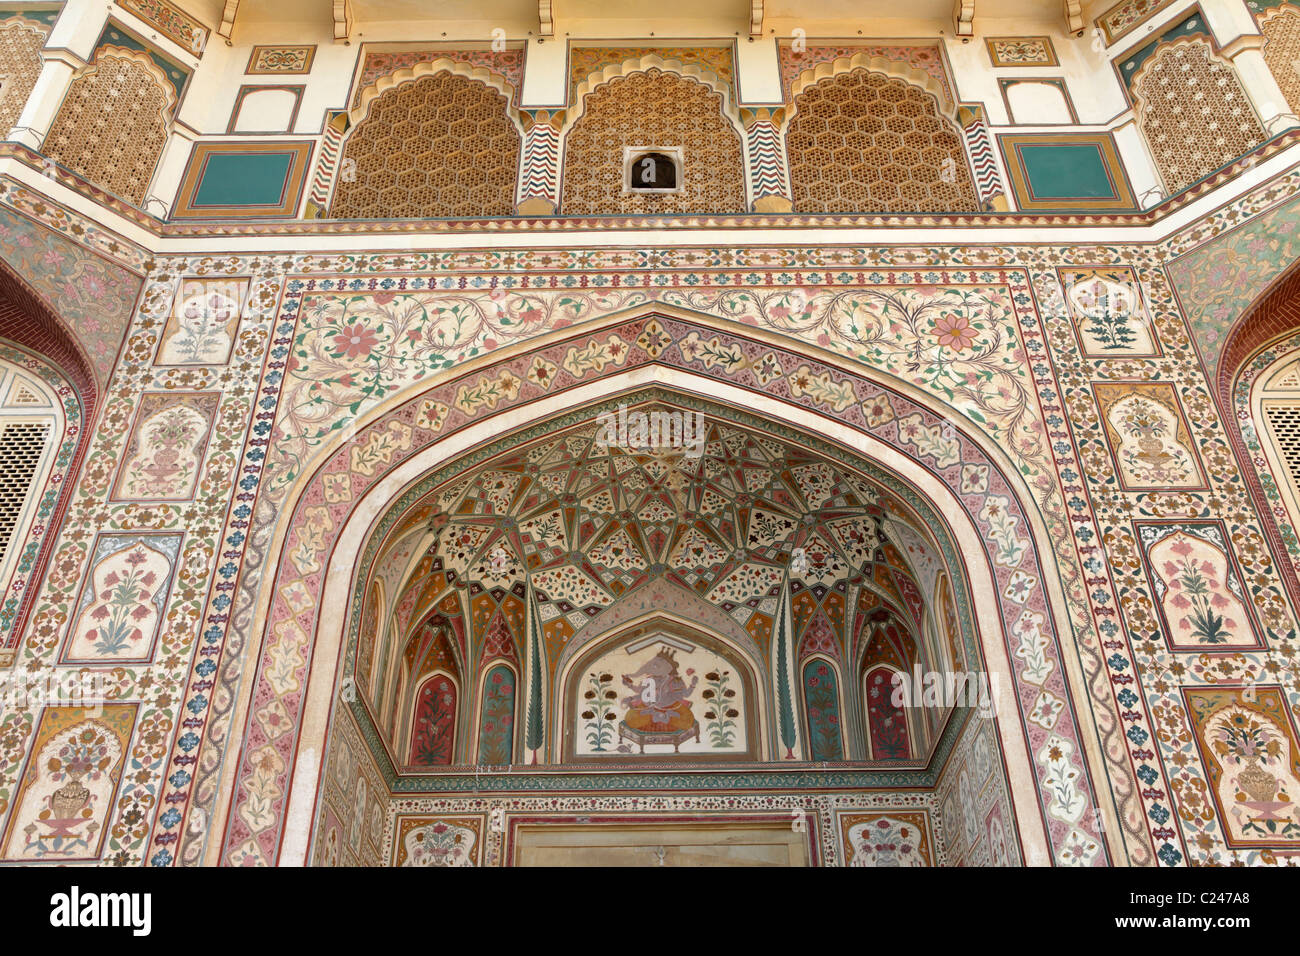 Ganesh Pol of Amber Fort, Jaipur, India. - Stock Image